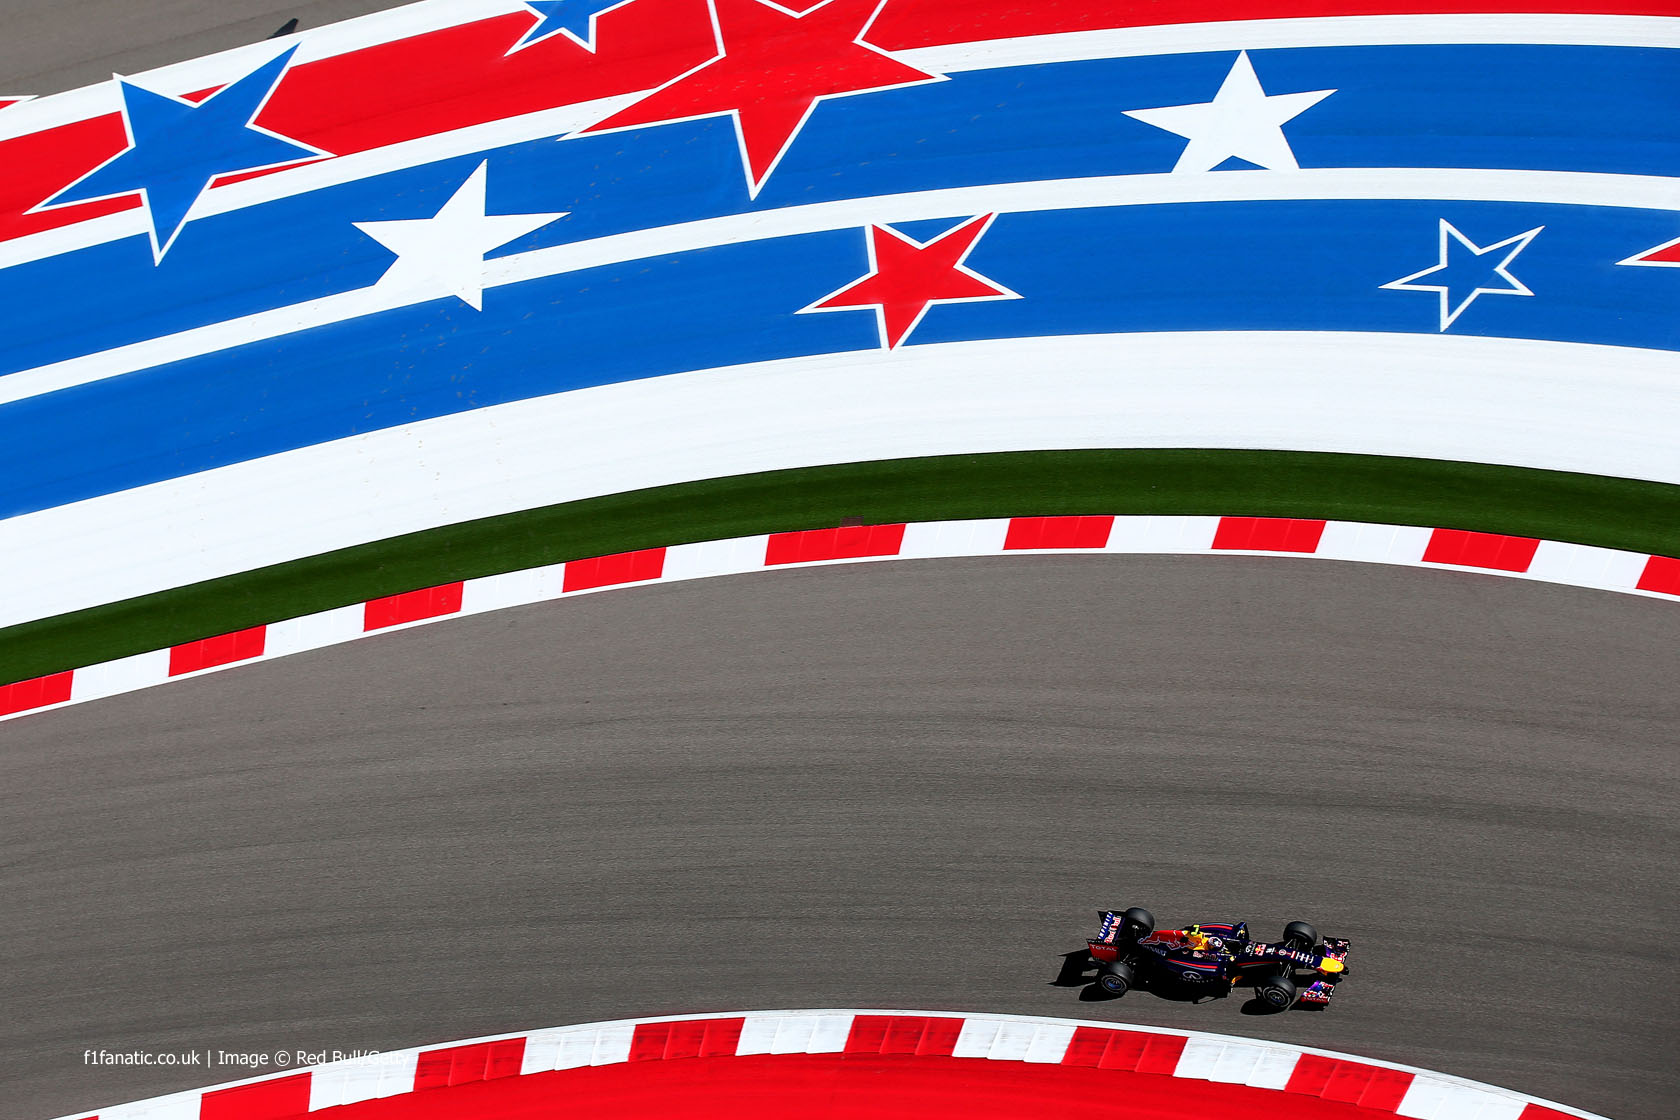 Daniel Ricciardo, Red Bull, Circuit of the Americas, 2014